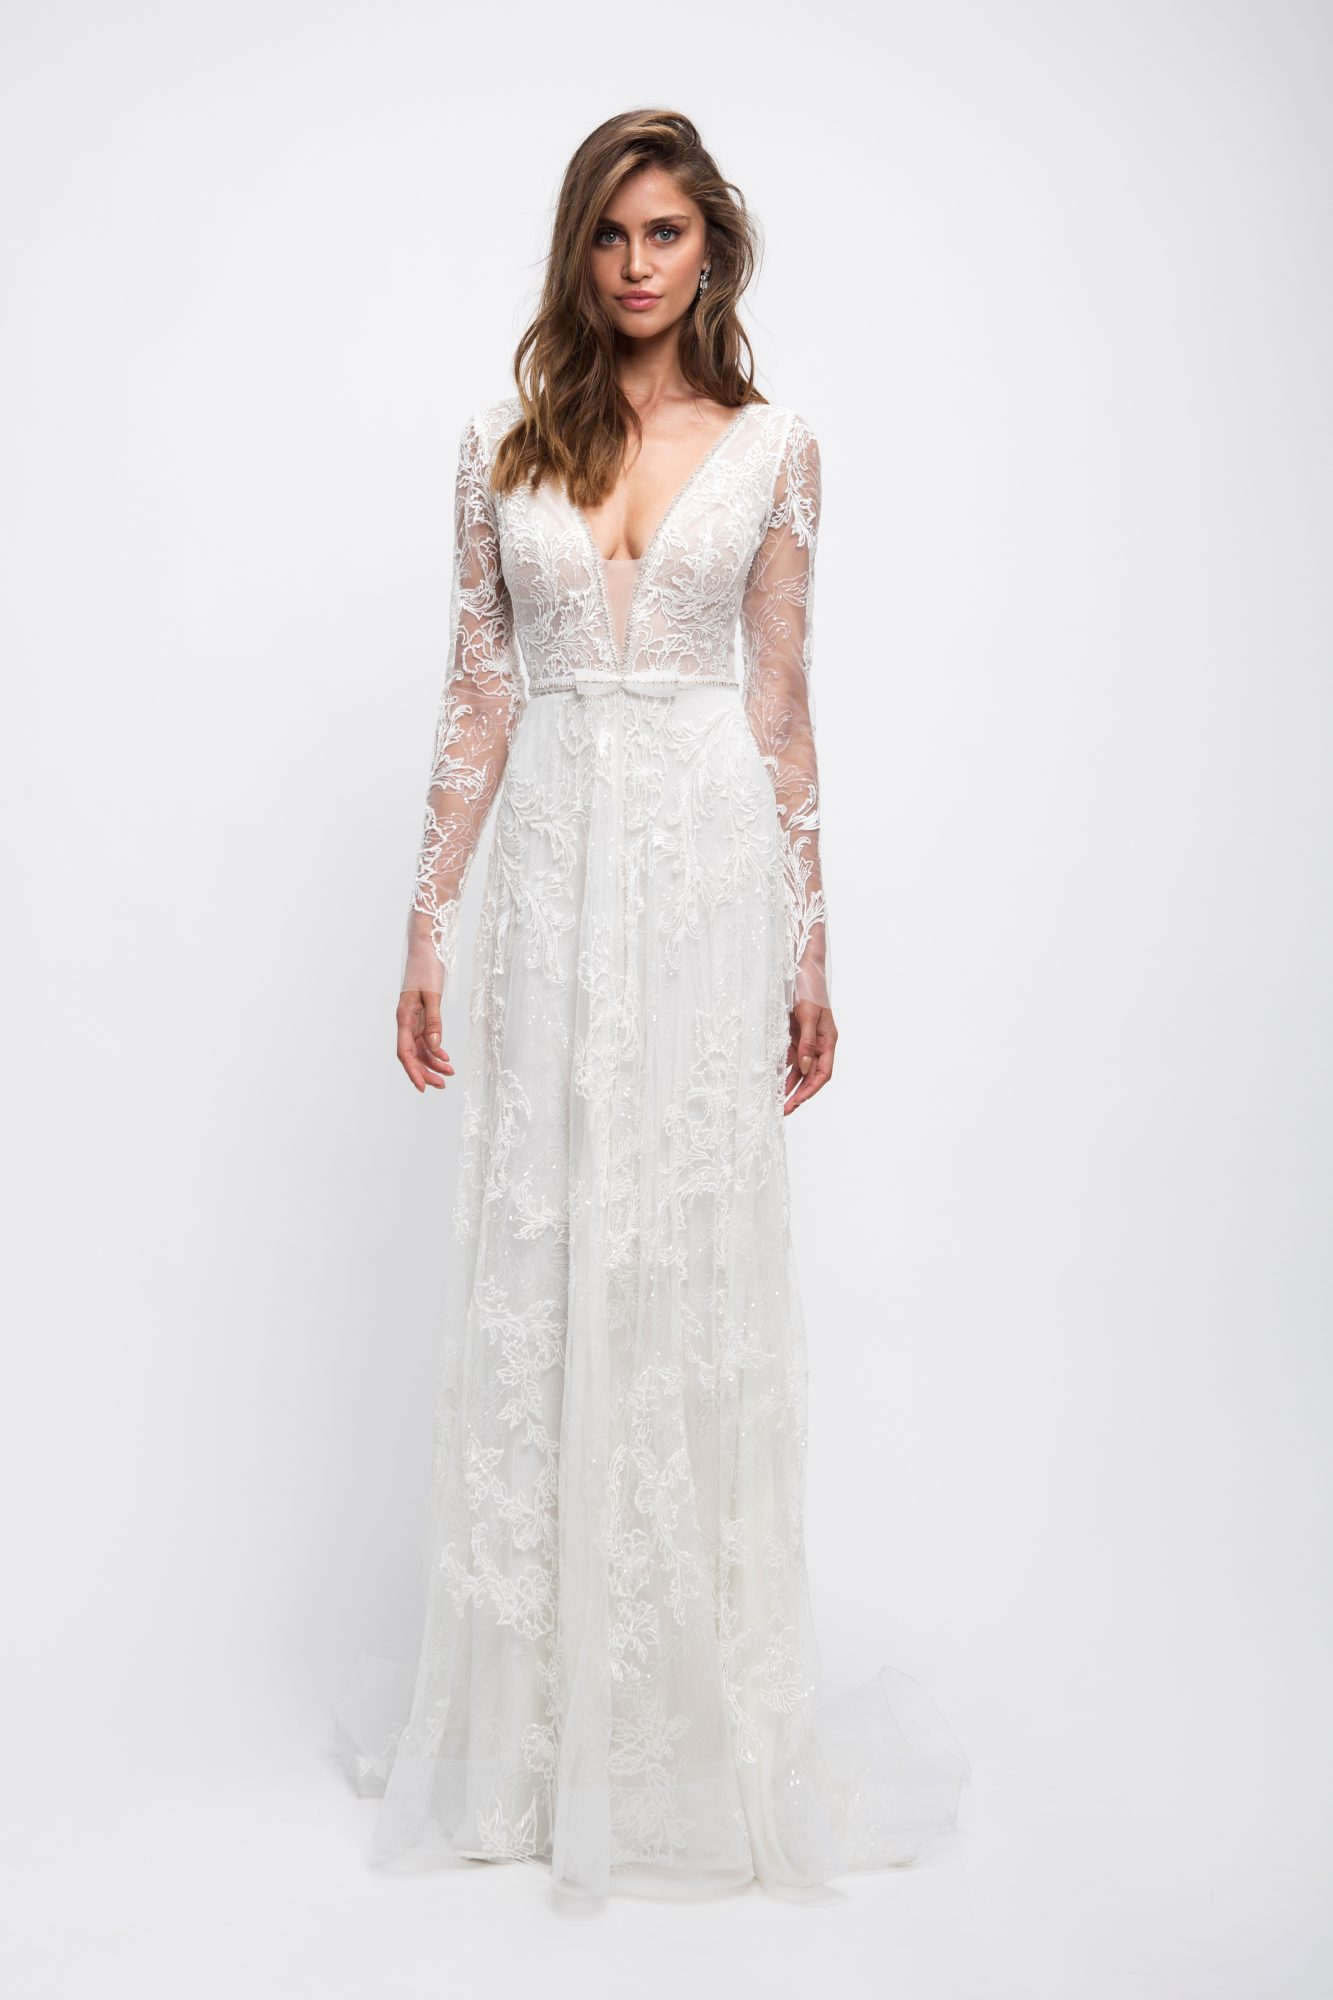 lihi hod wedding dress lace long sleeves v-neck